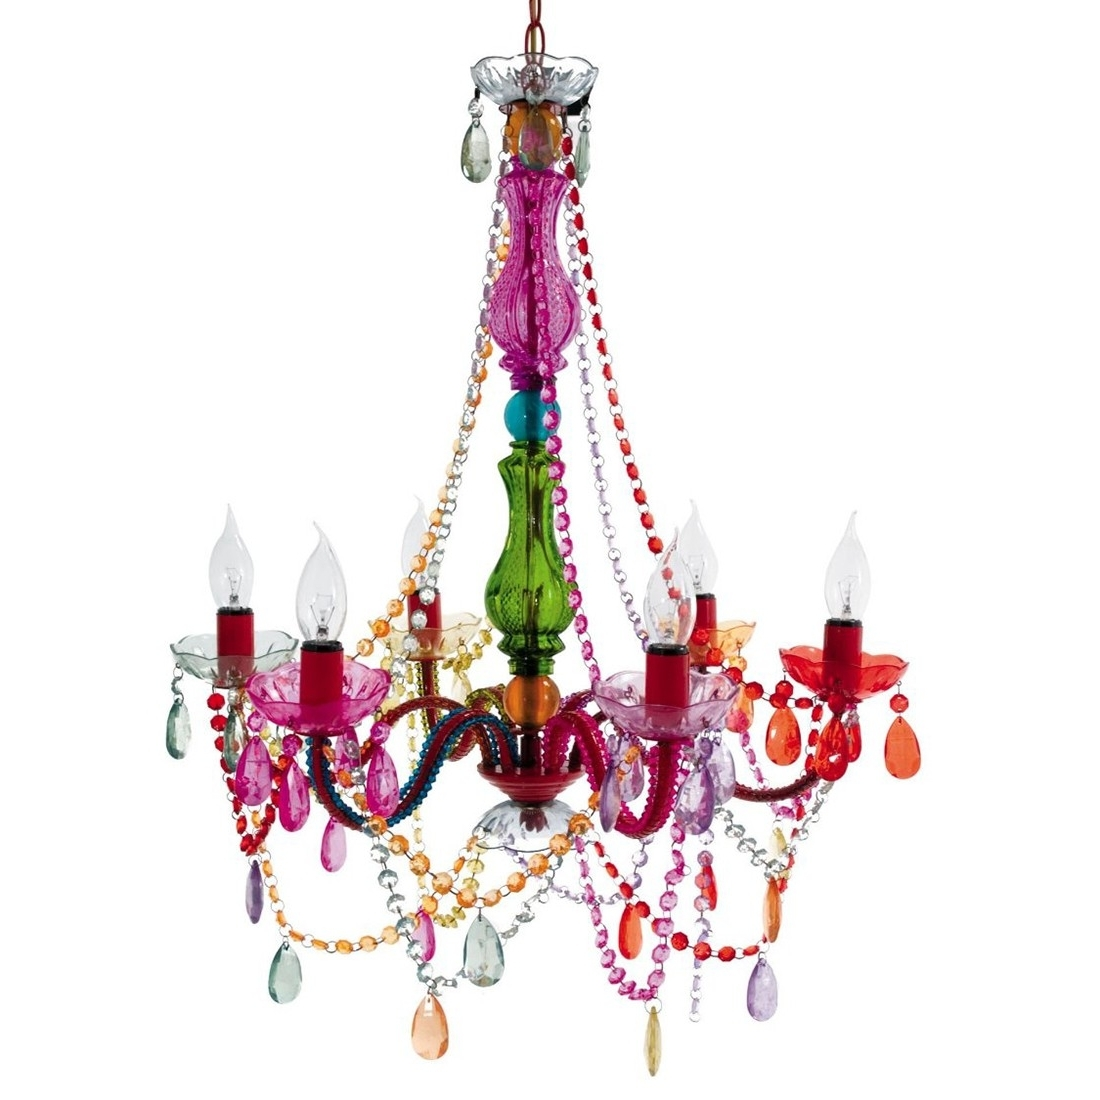 Gypsy Chandelier Adds A Touch Of Outrageous Baroque Class To Any Throughout Most Recently Released Colourful Chandeliers (View 3 of 20)